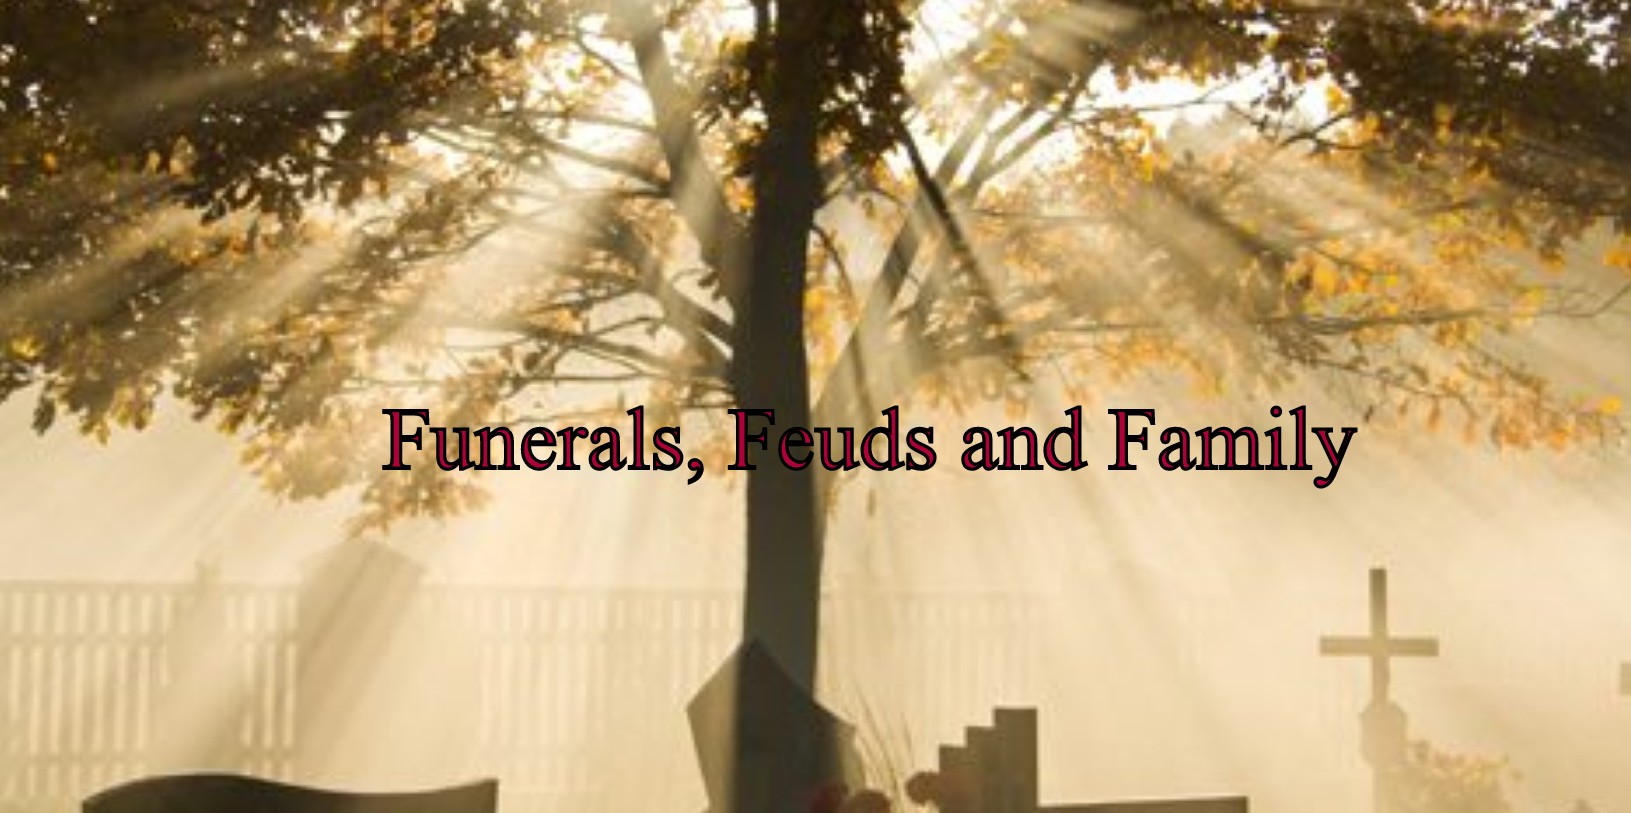 Funerals, Feuds and Families